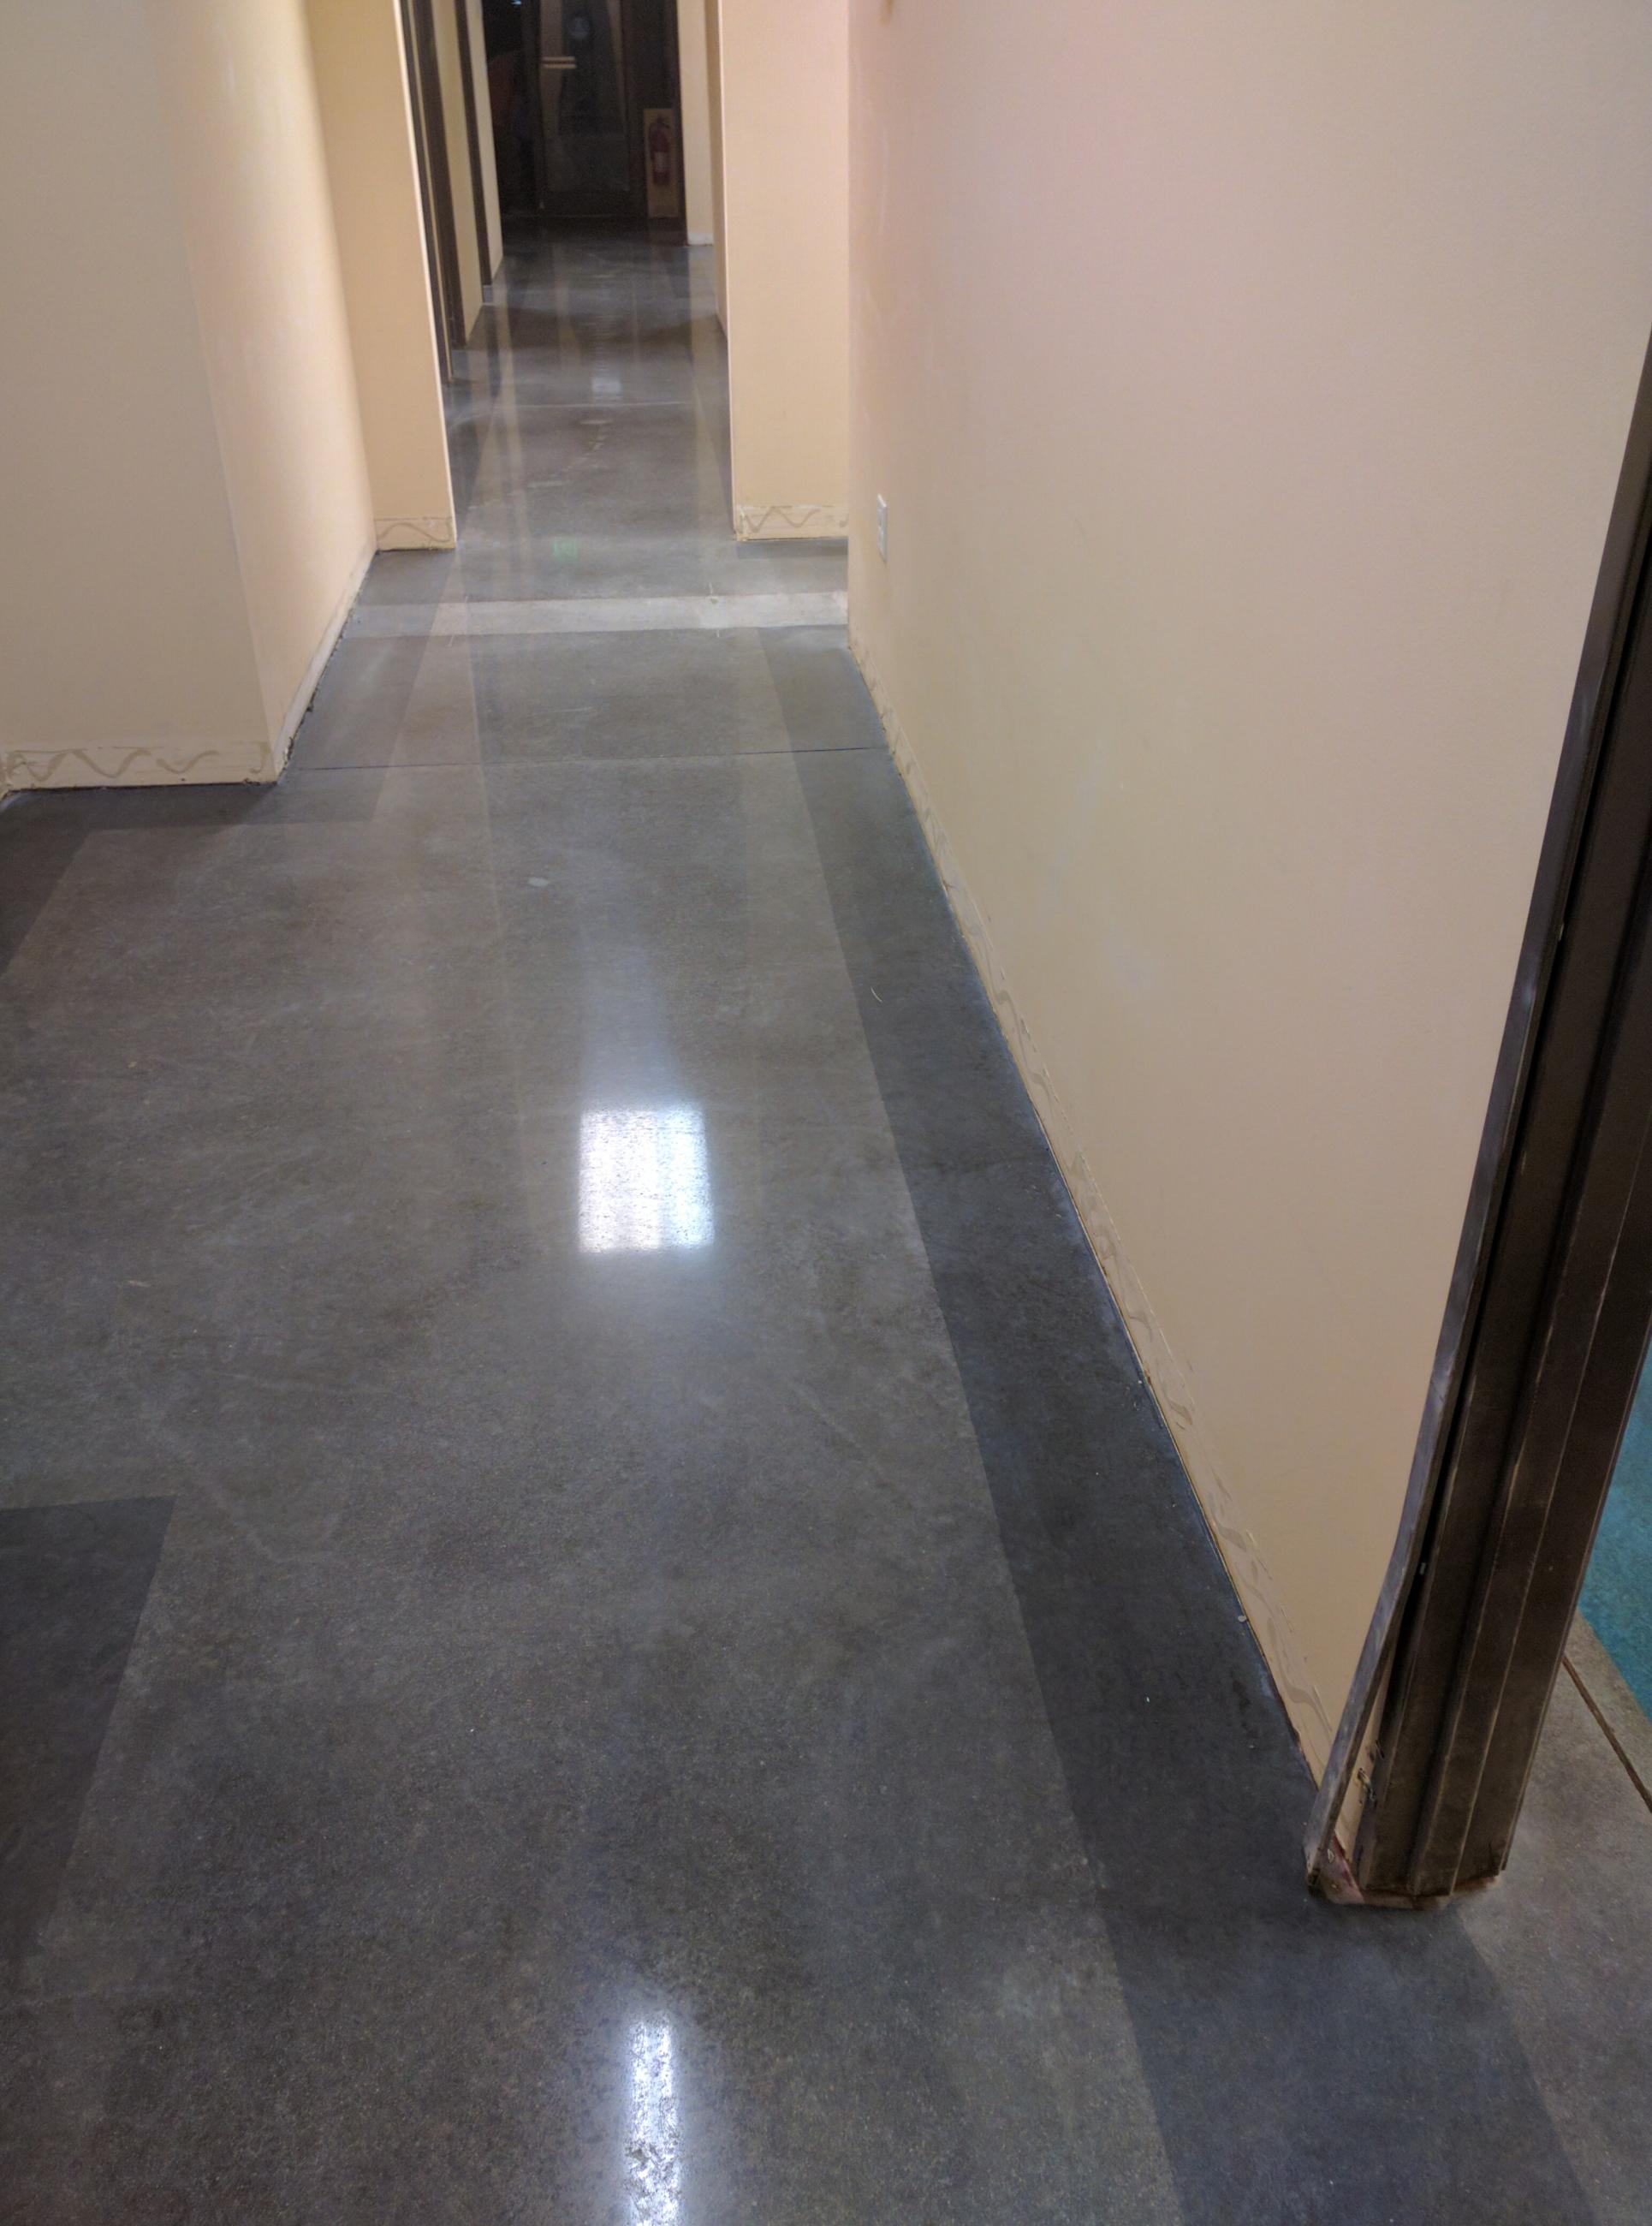 polished concrete floor colored concrete gray in center with black borders